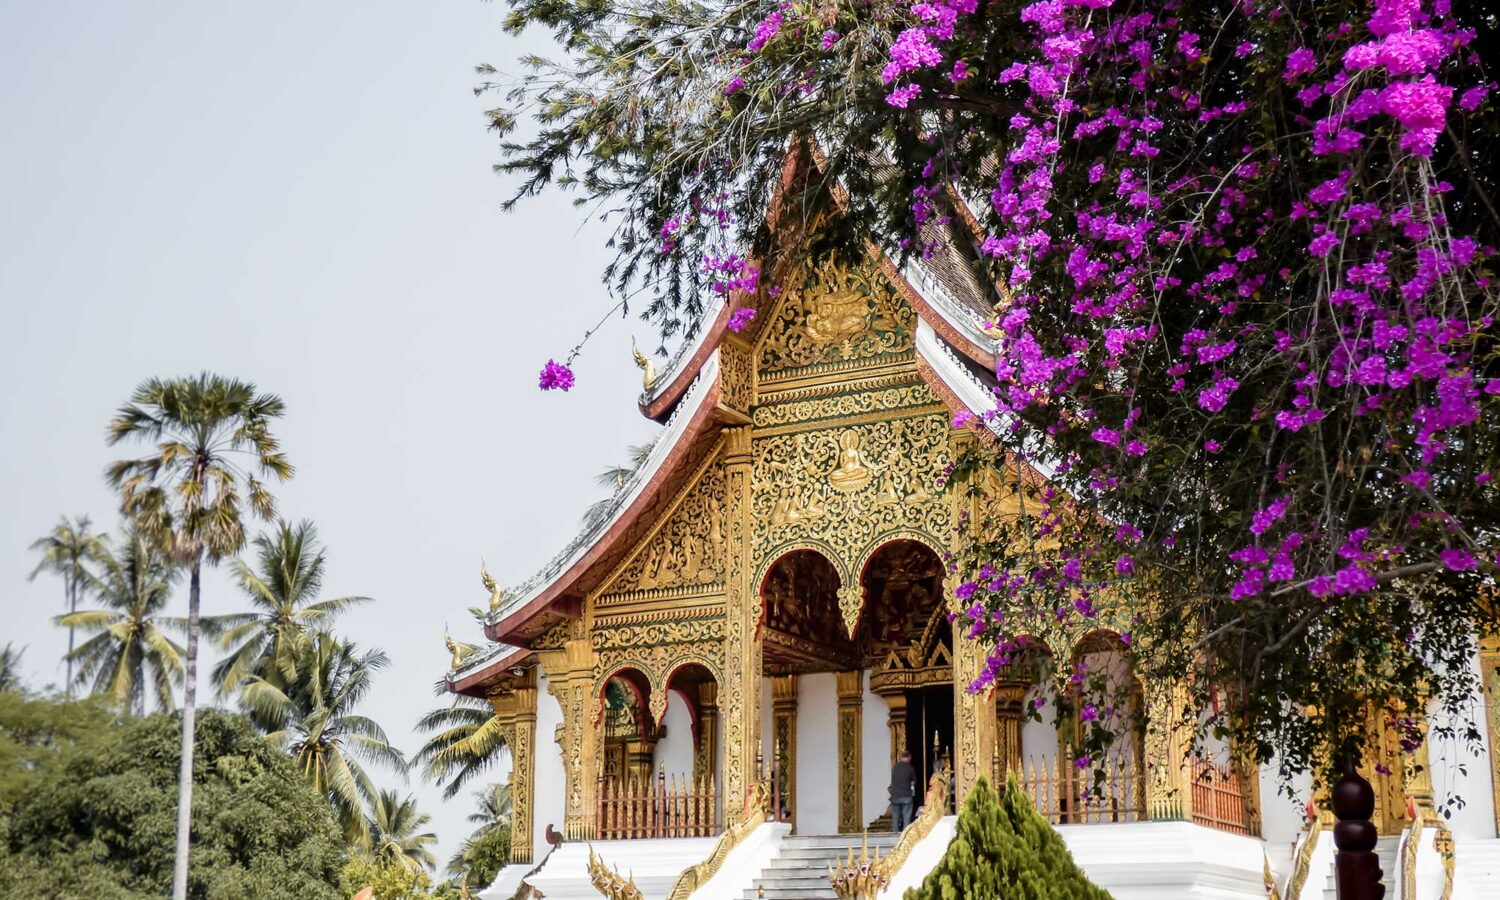 When only one week to spend in Laos, you'll have to include Luang Prabang in your two week Laos itinerary